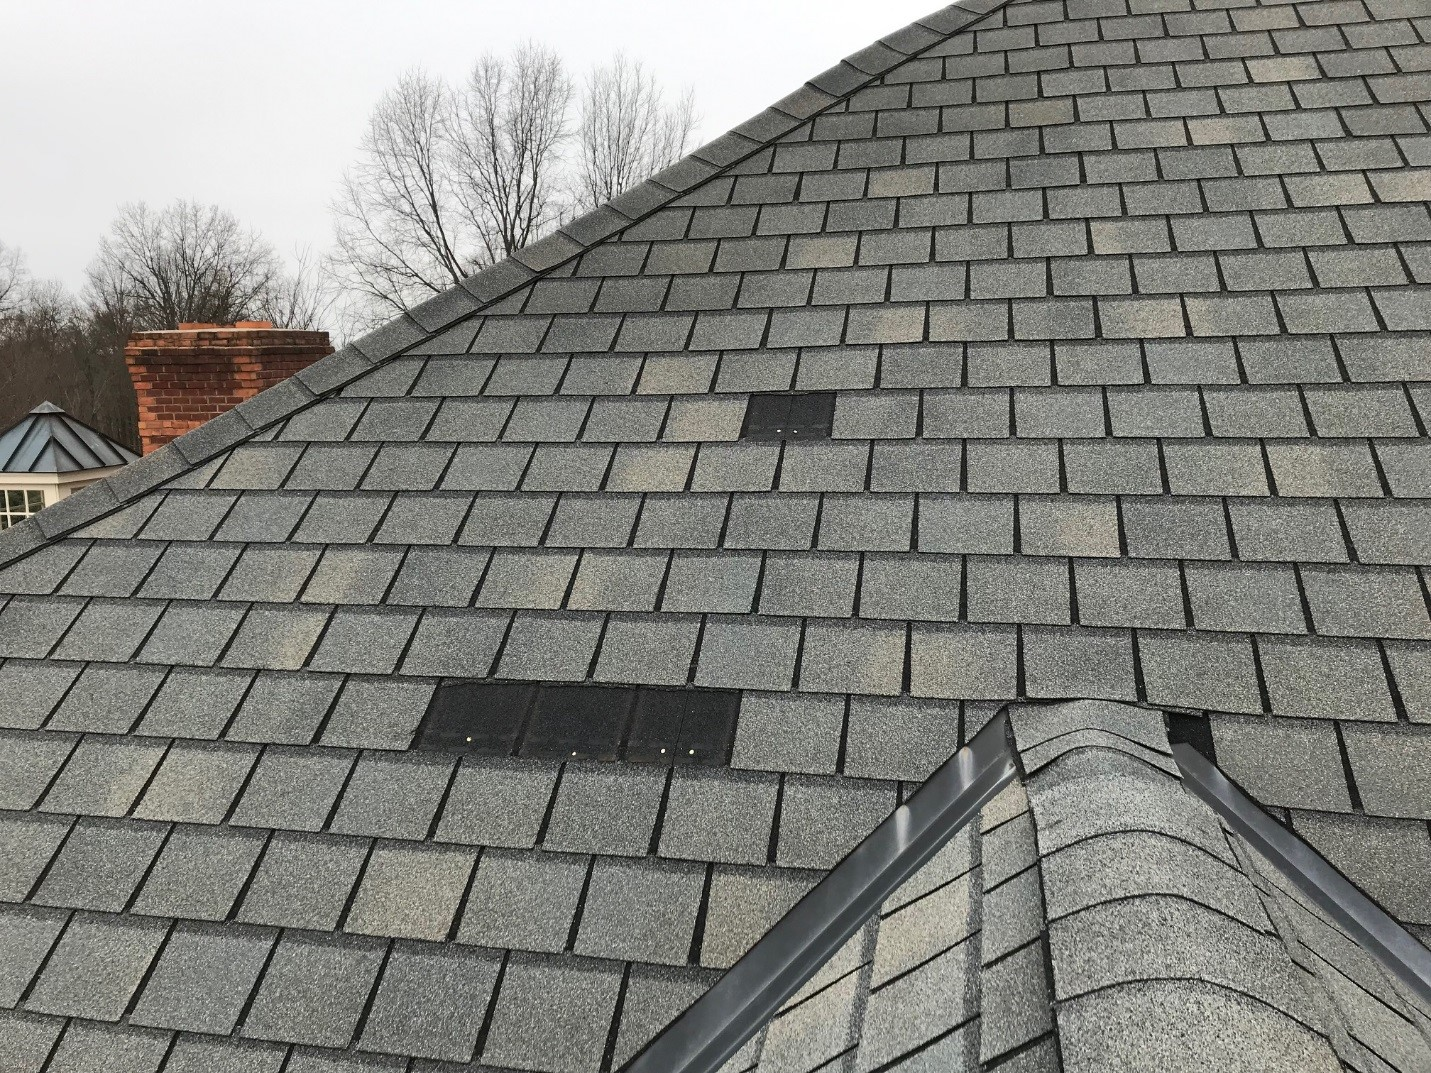 Shingles missing due to wind storm in Northeast Ohio.